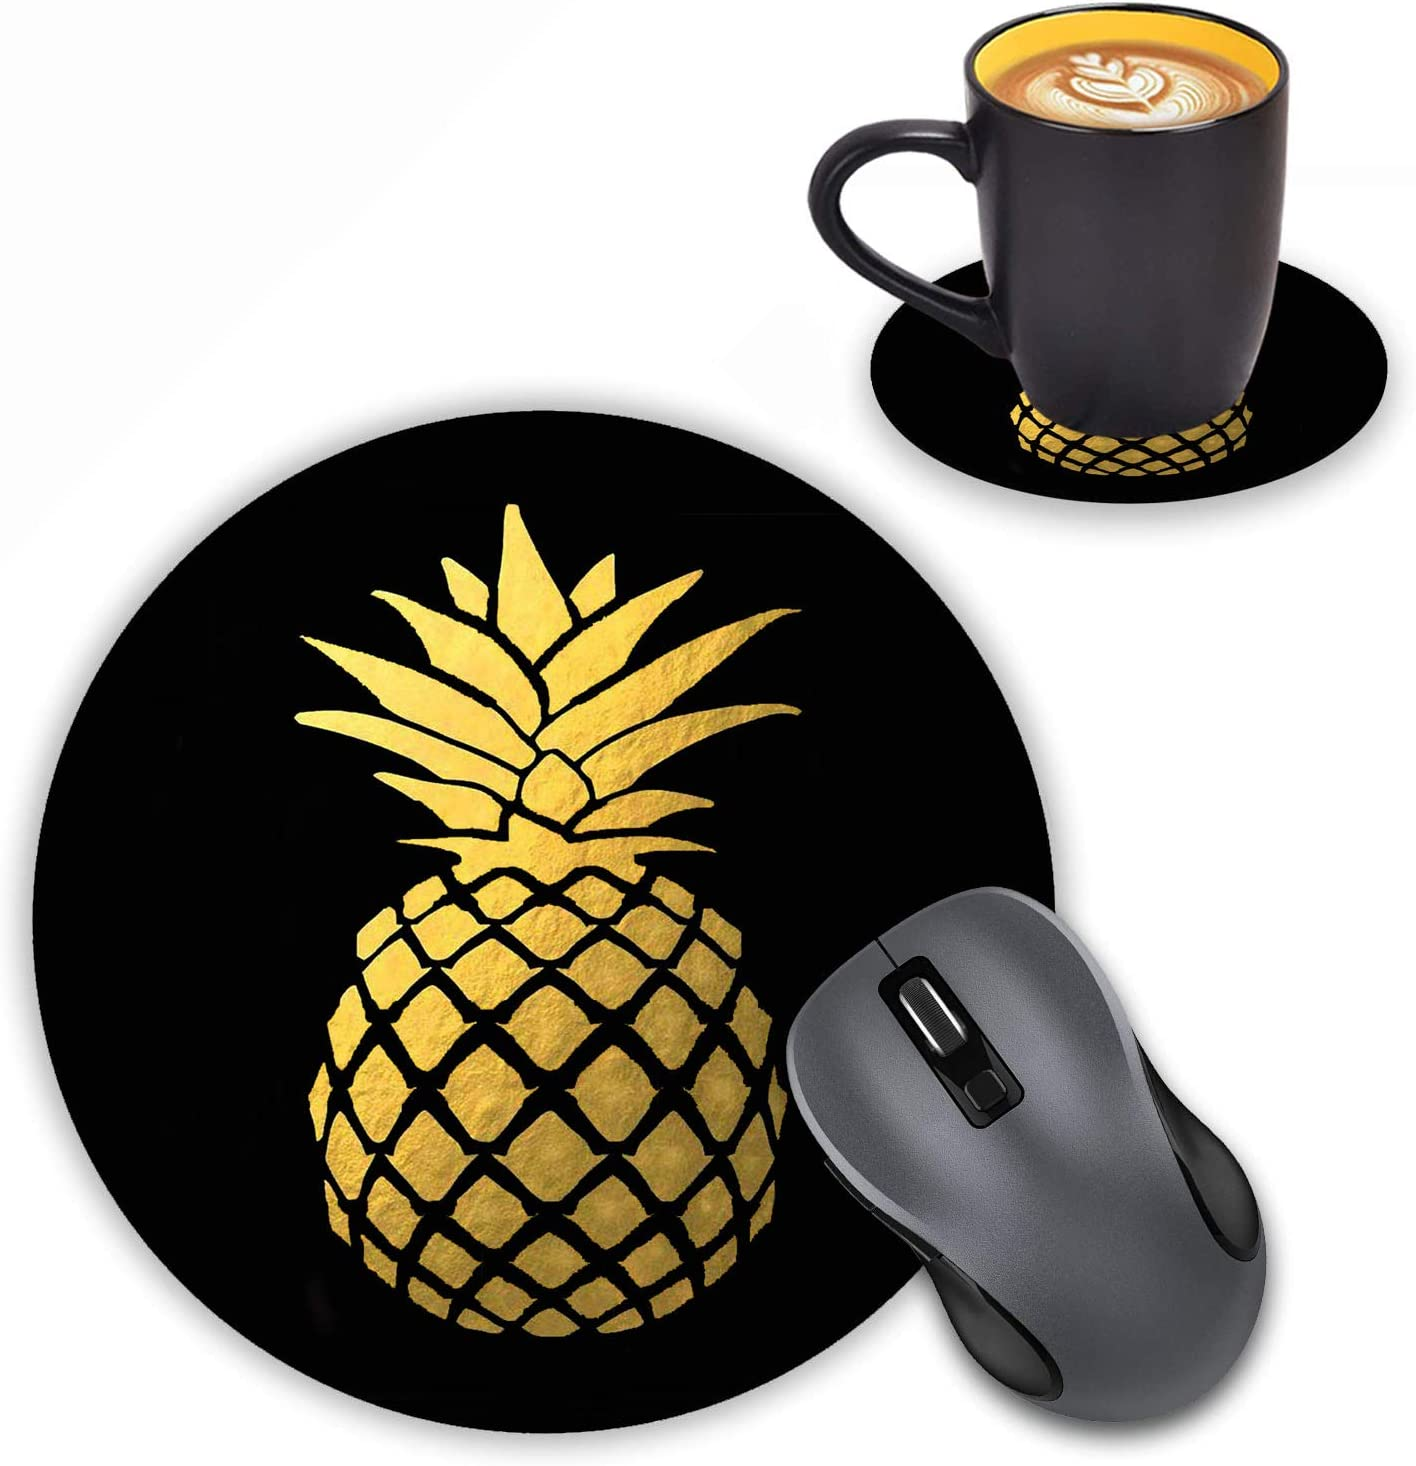 Round Mouse Pad with Coasters Set, Gold Foil Pineapple Design Mouse Pad Non-Slip Rubber Mousepad Office Accessories Desk Decor Mouse Pads for Computers Laptop